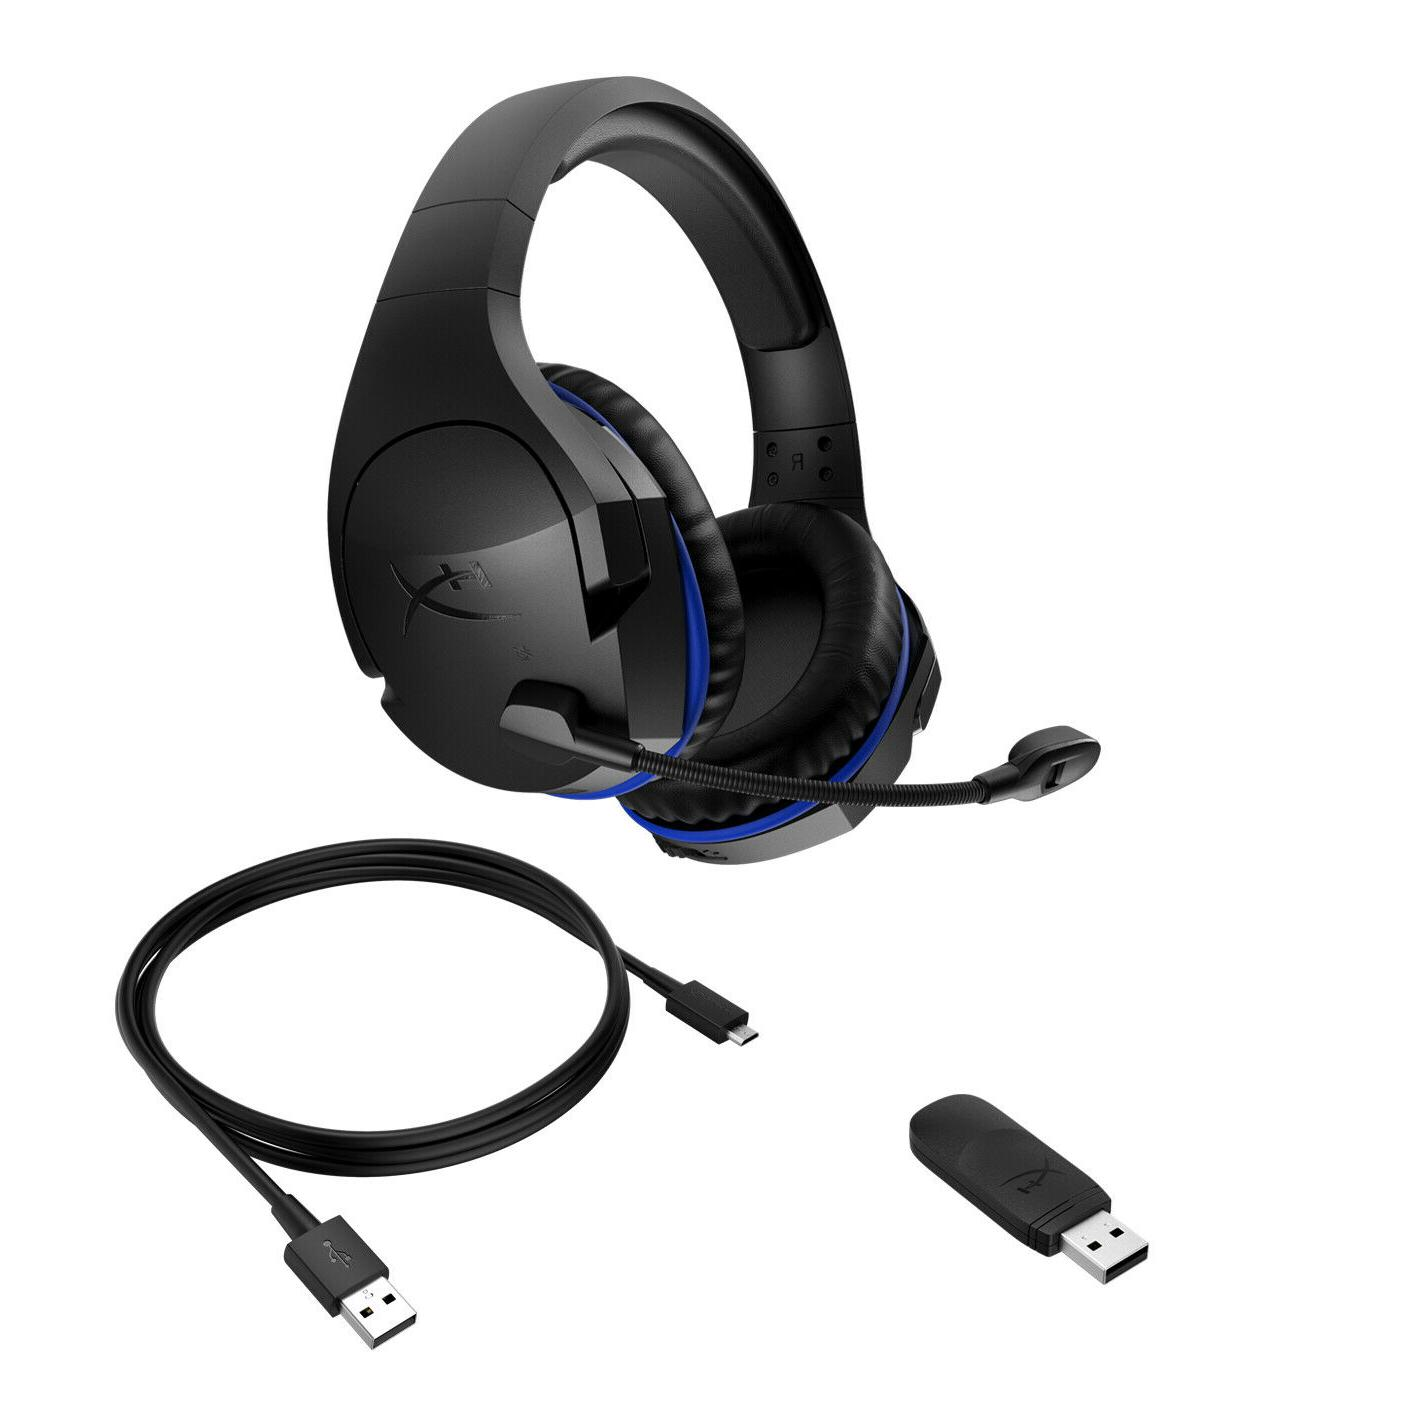 HyperX Stinger Gaming Headset w/ Lasting Battery to 17hr